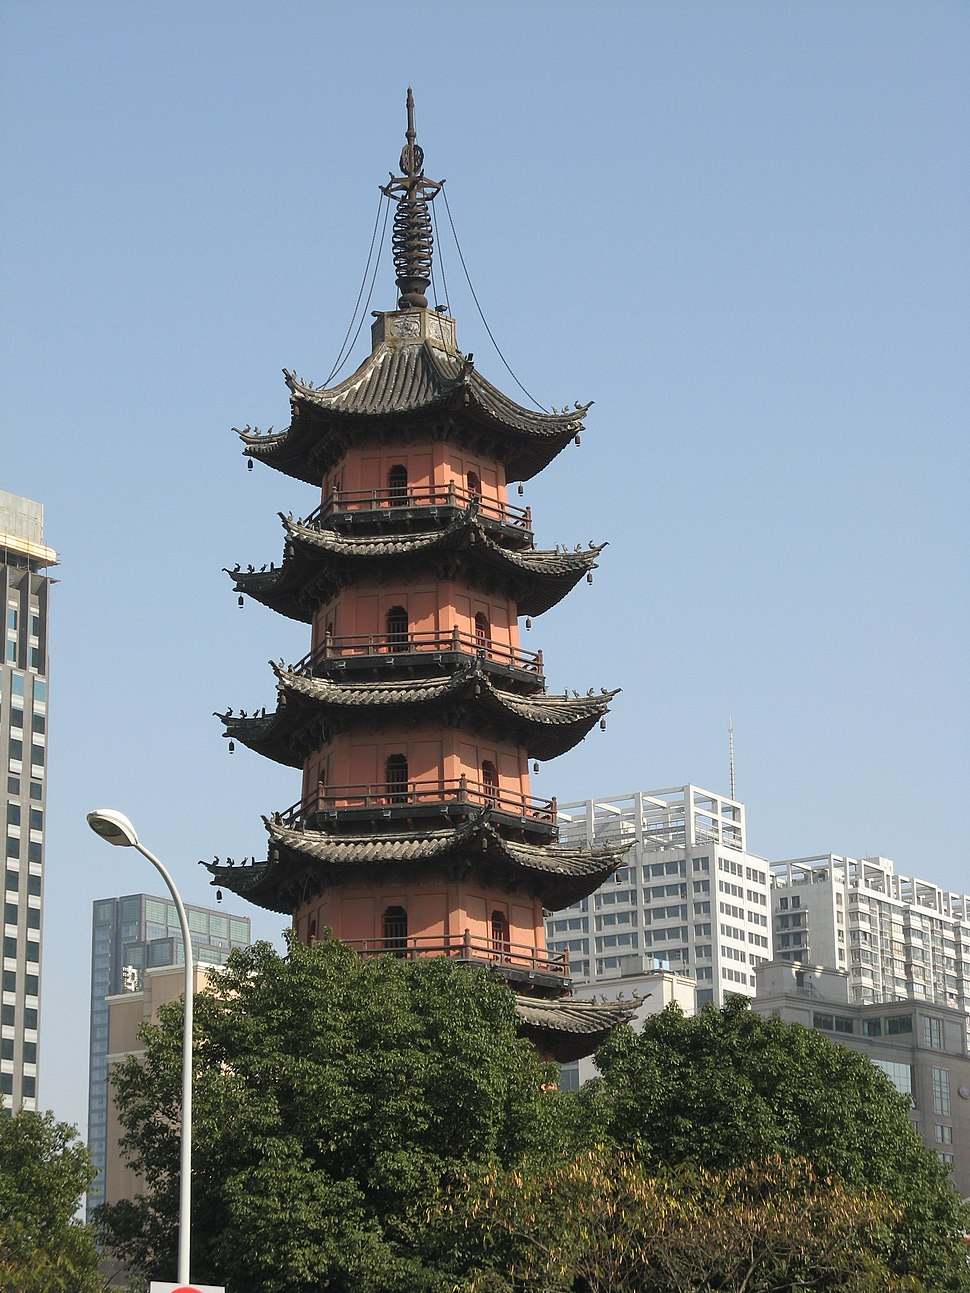 Tianfeng Tower